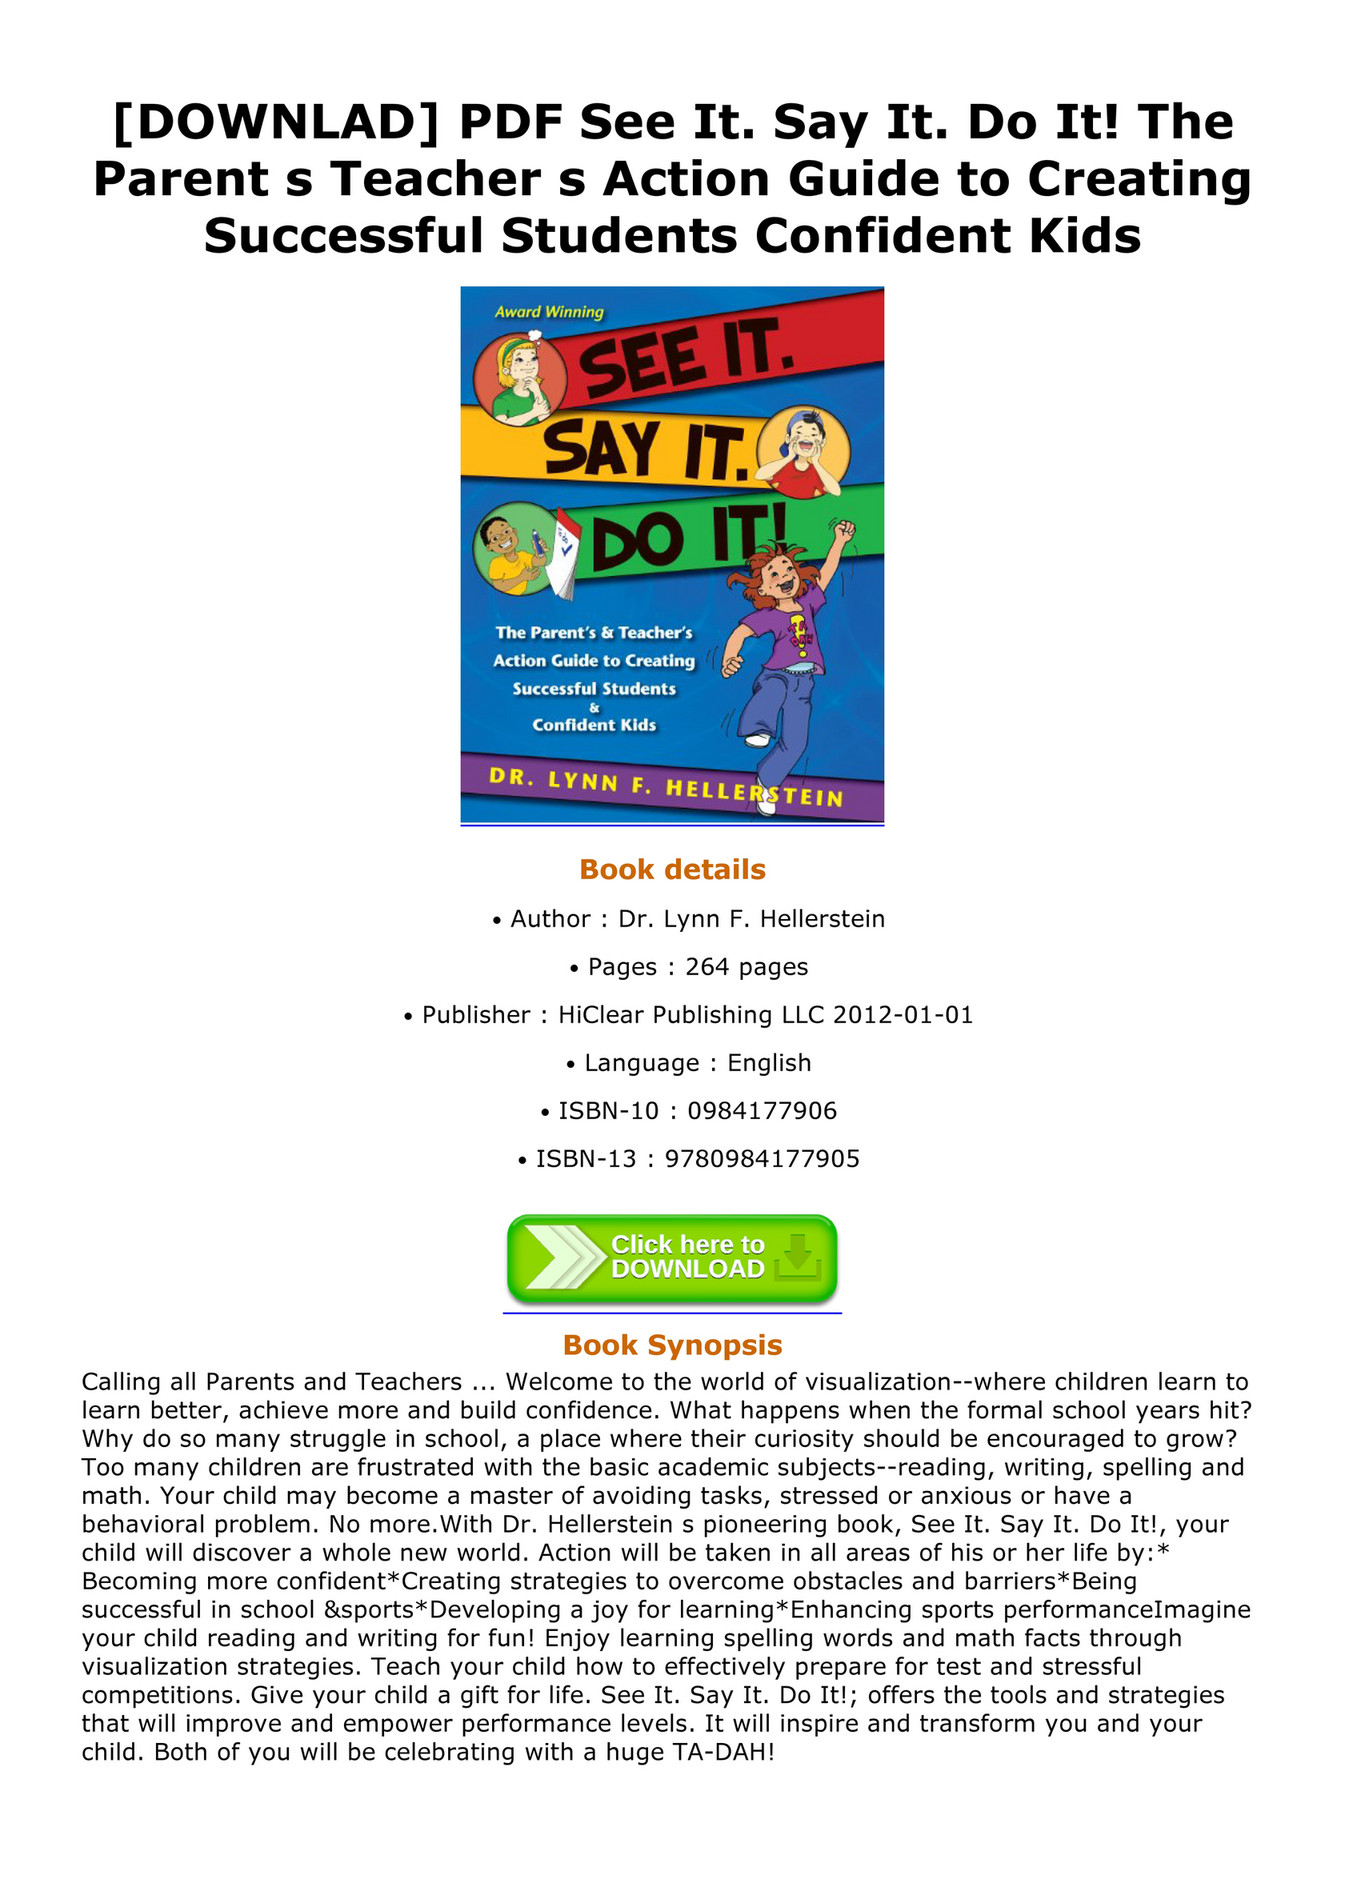 See It The Parents /& Teachers Action Guide to Creating Successful Students /& Confident Kids Do It! Say It